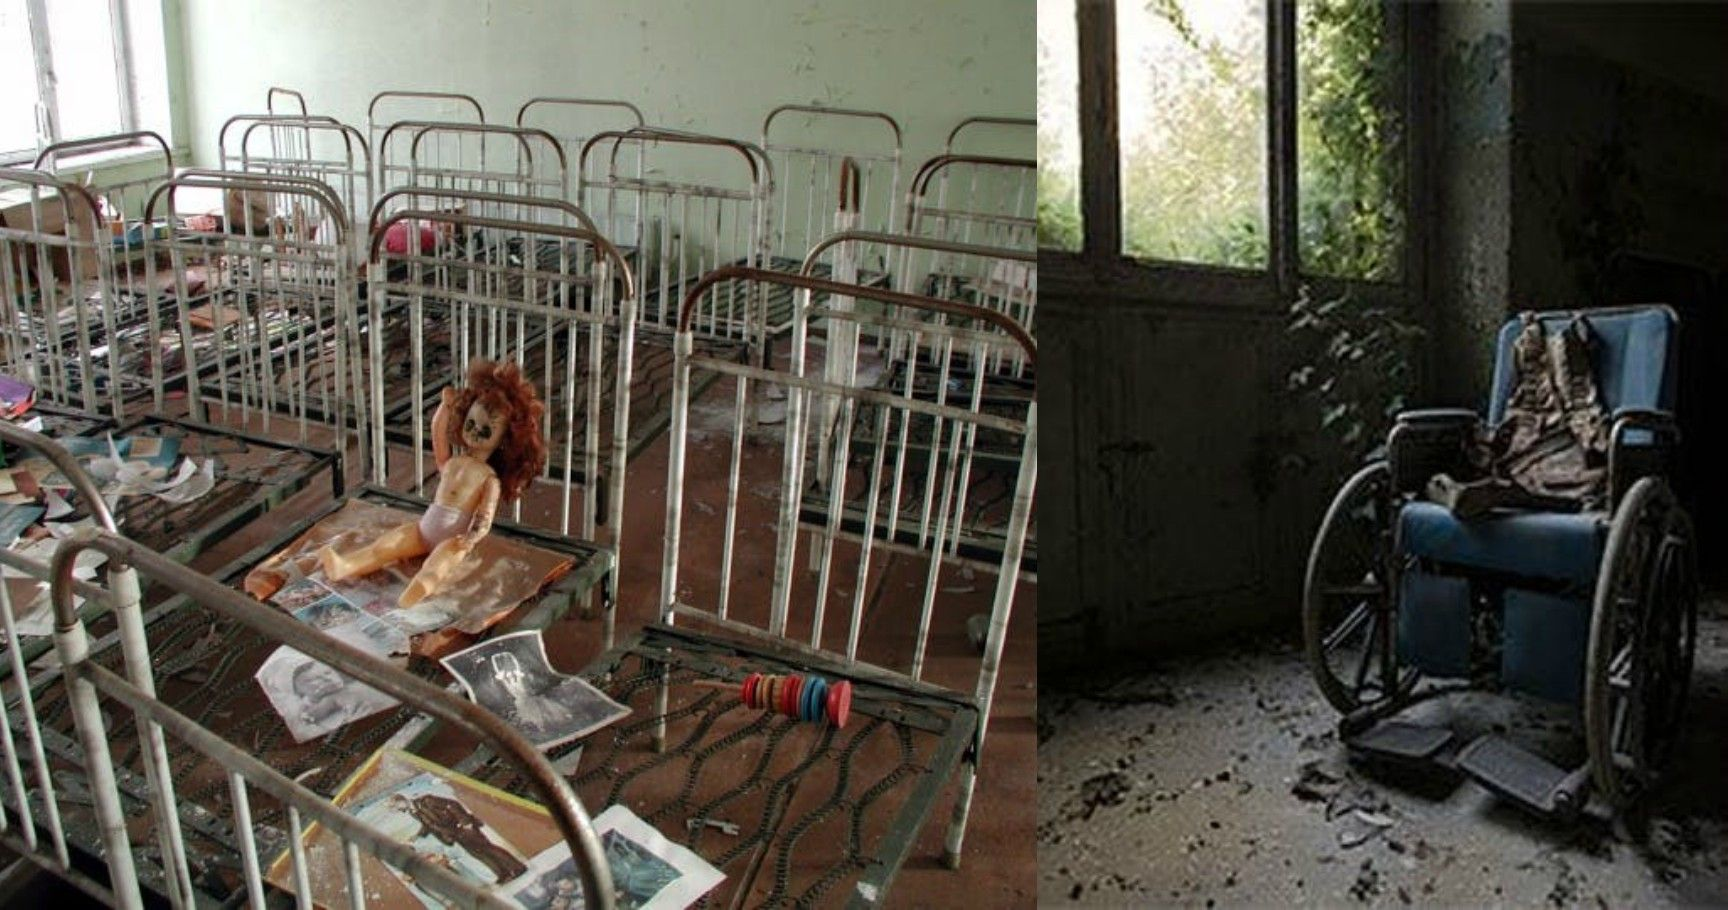 15 Chilling Photos Of Abandoned Orphanages That Still Haunt Us